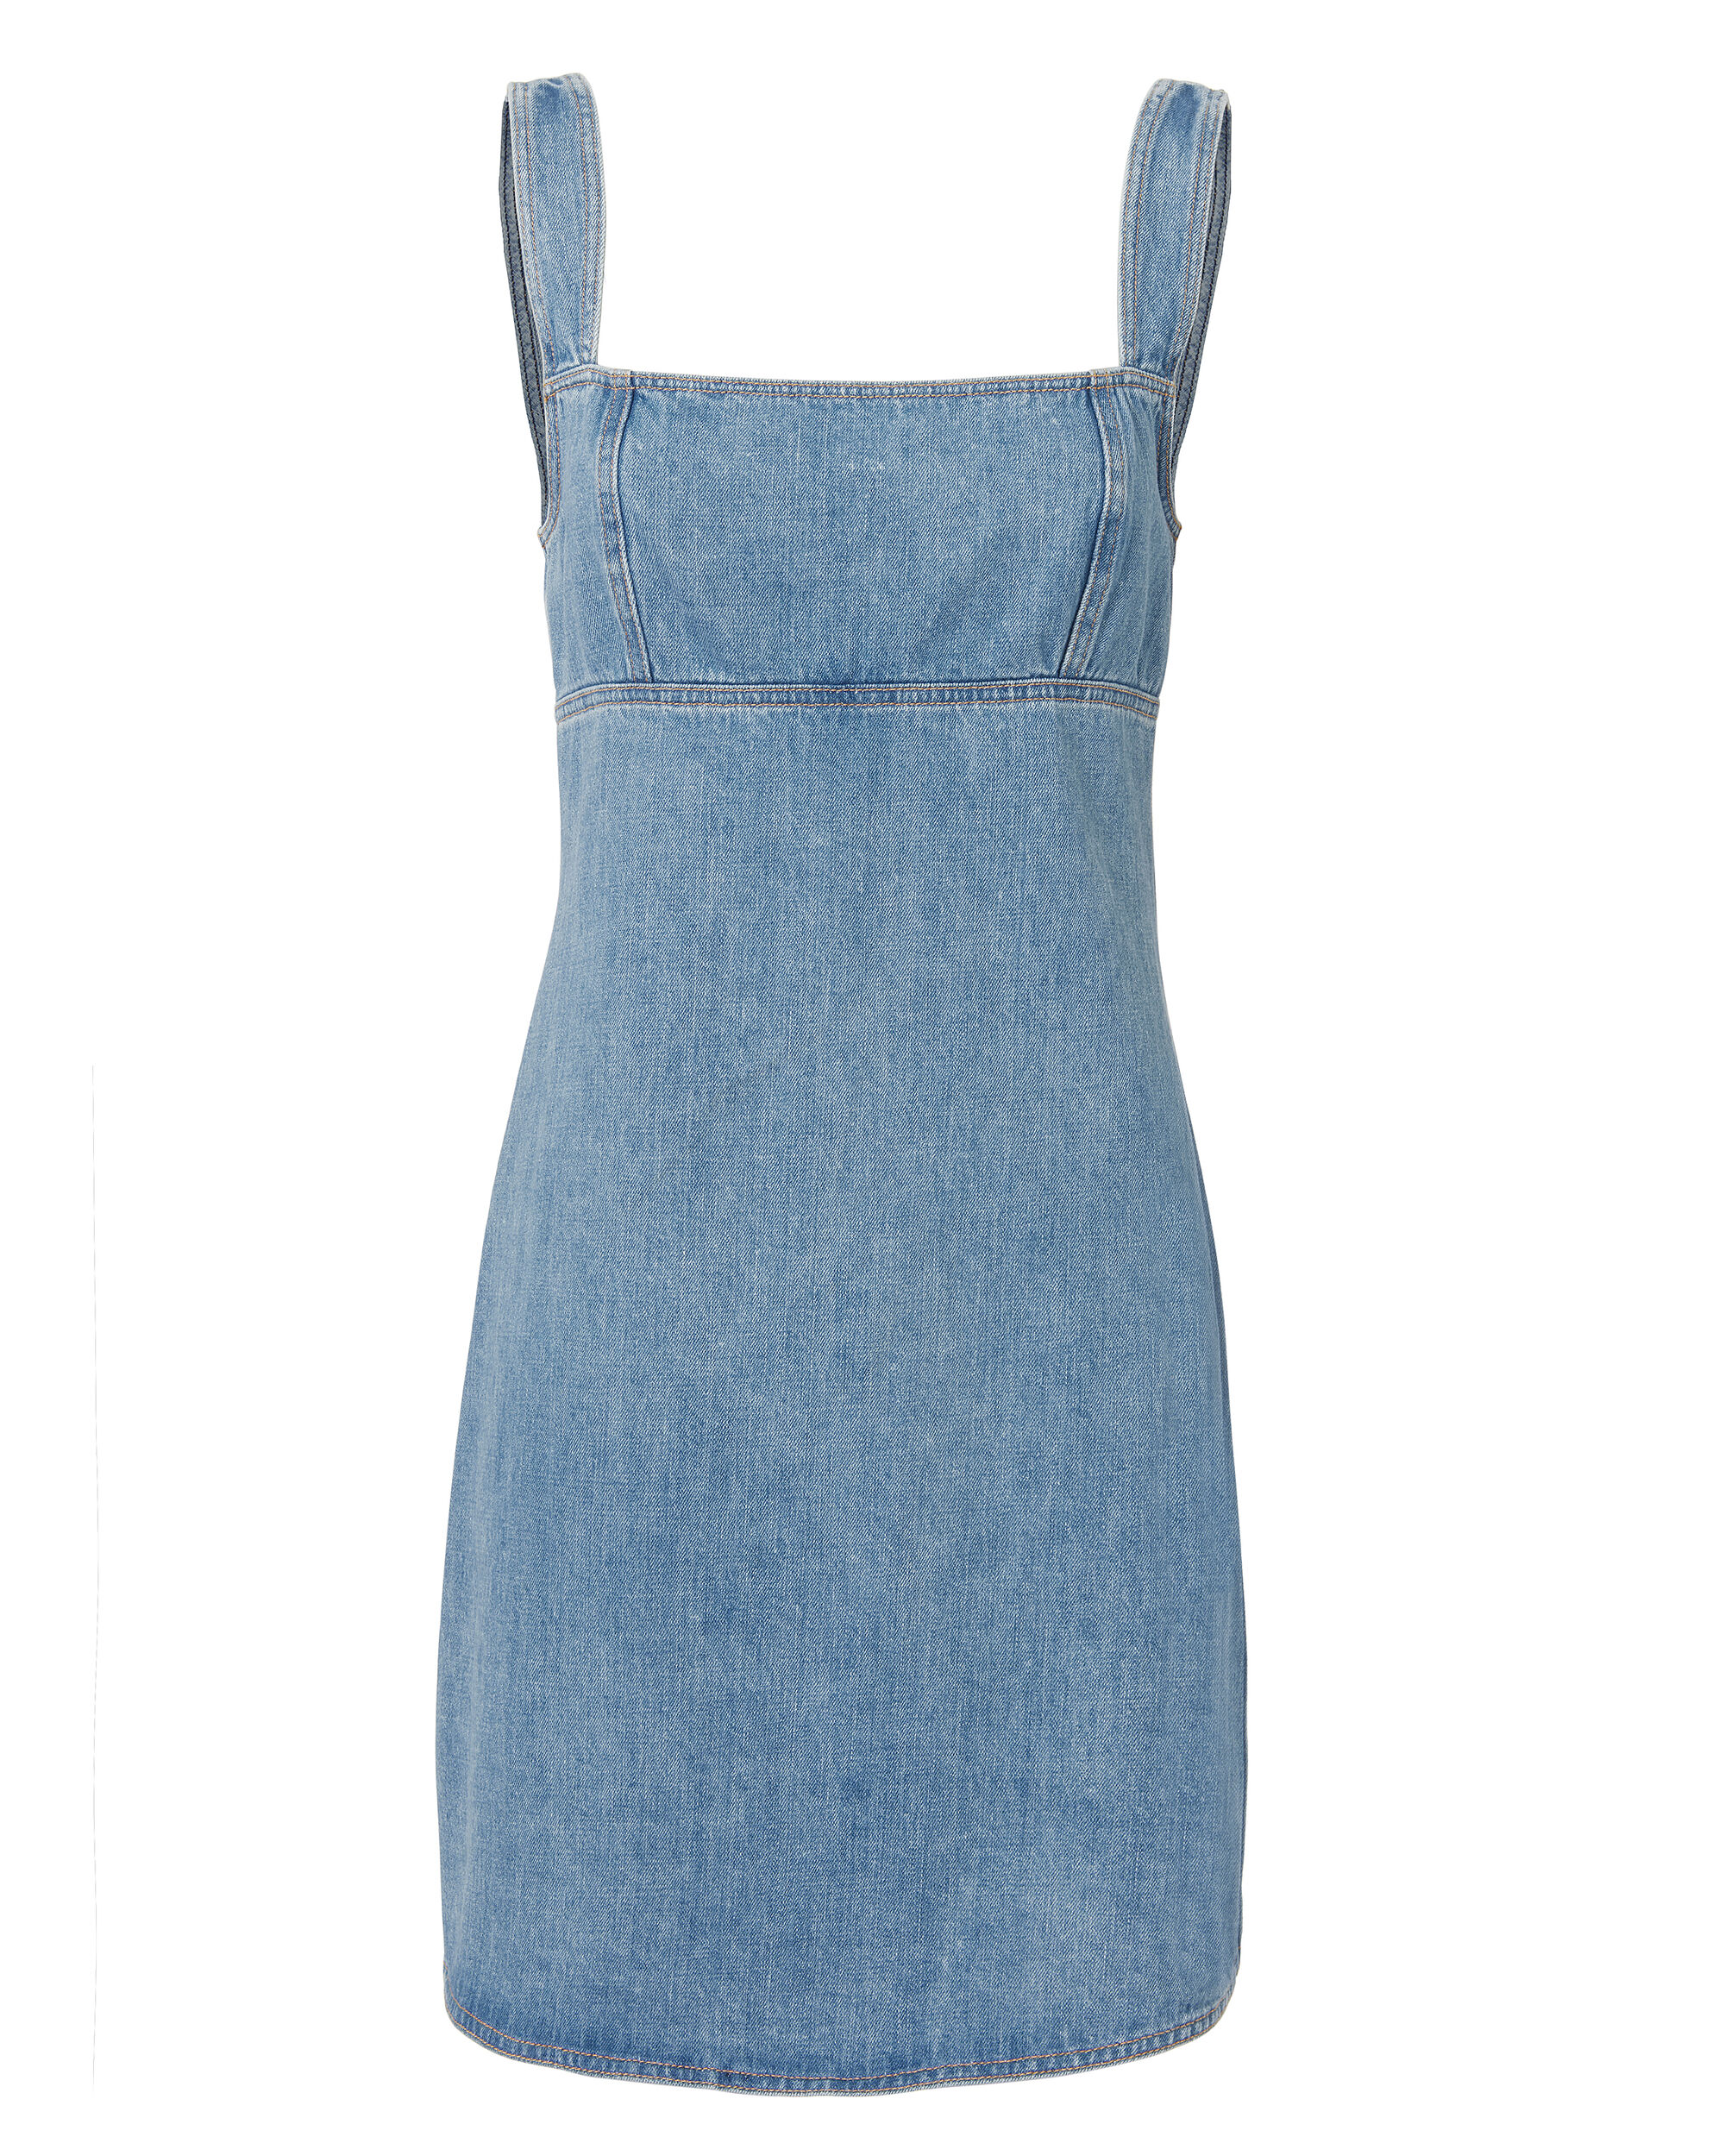 Paula Dress, MEDIUM BLUE DENIM, hi-res